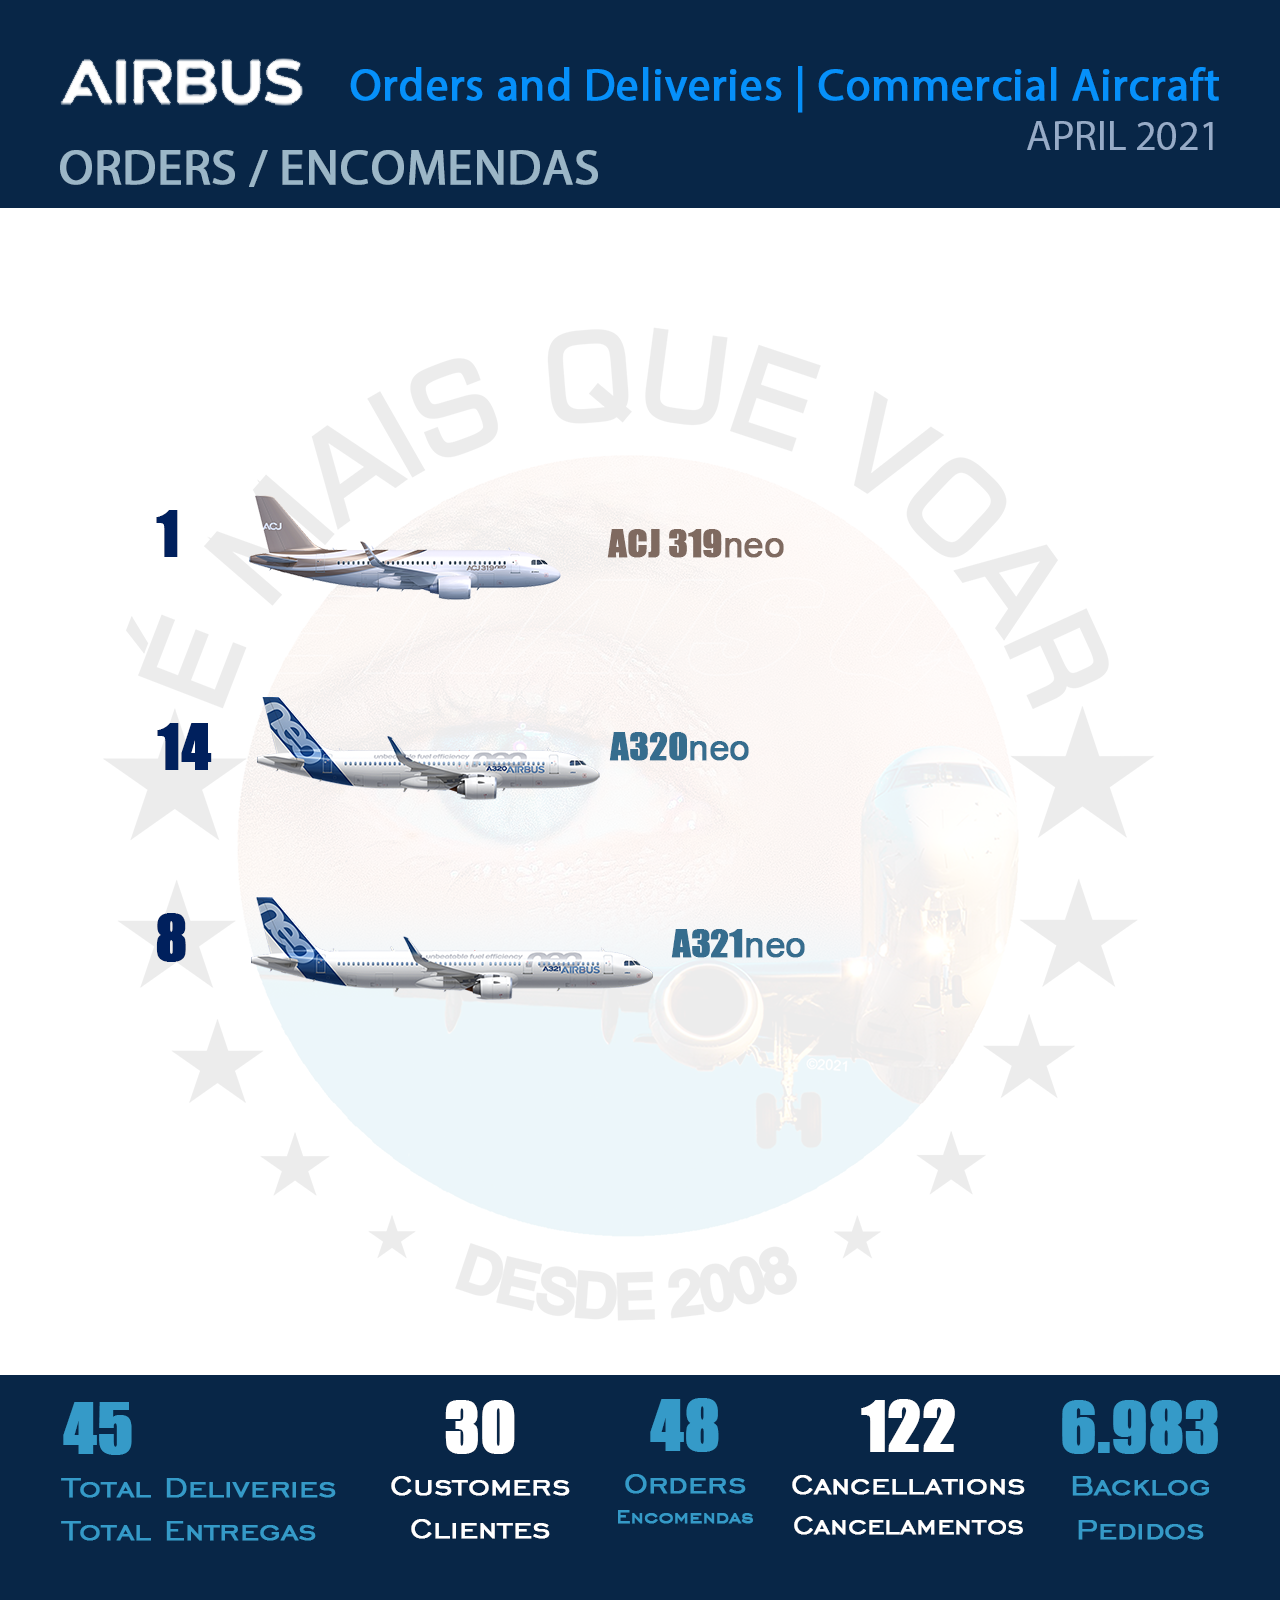 INFOGRAPHIC: Orders and Deliveries Airbus Commercial Aircraft – April 2021 | MORE THAN FLY